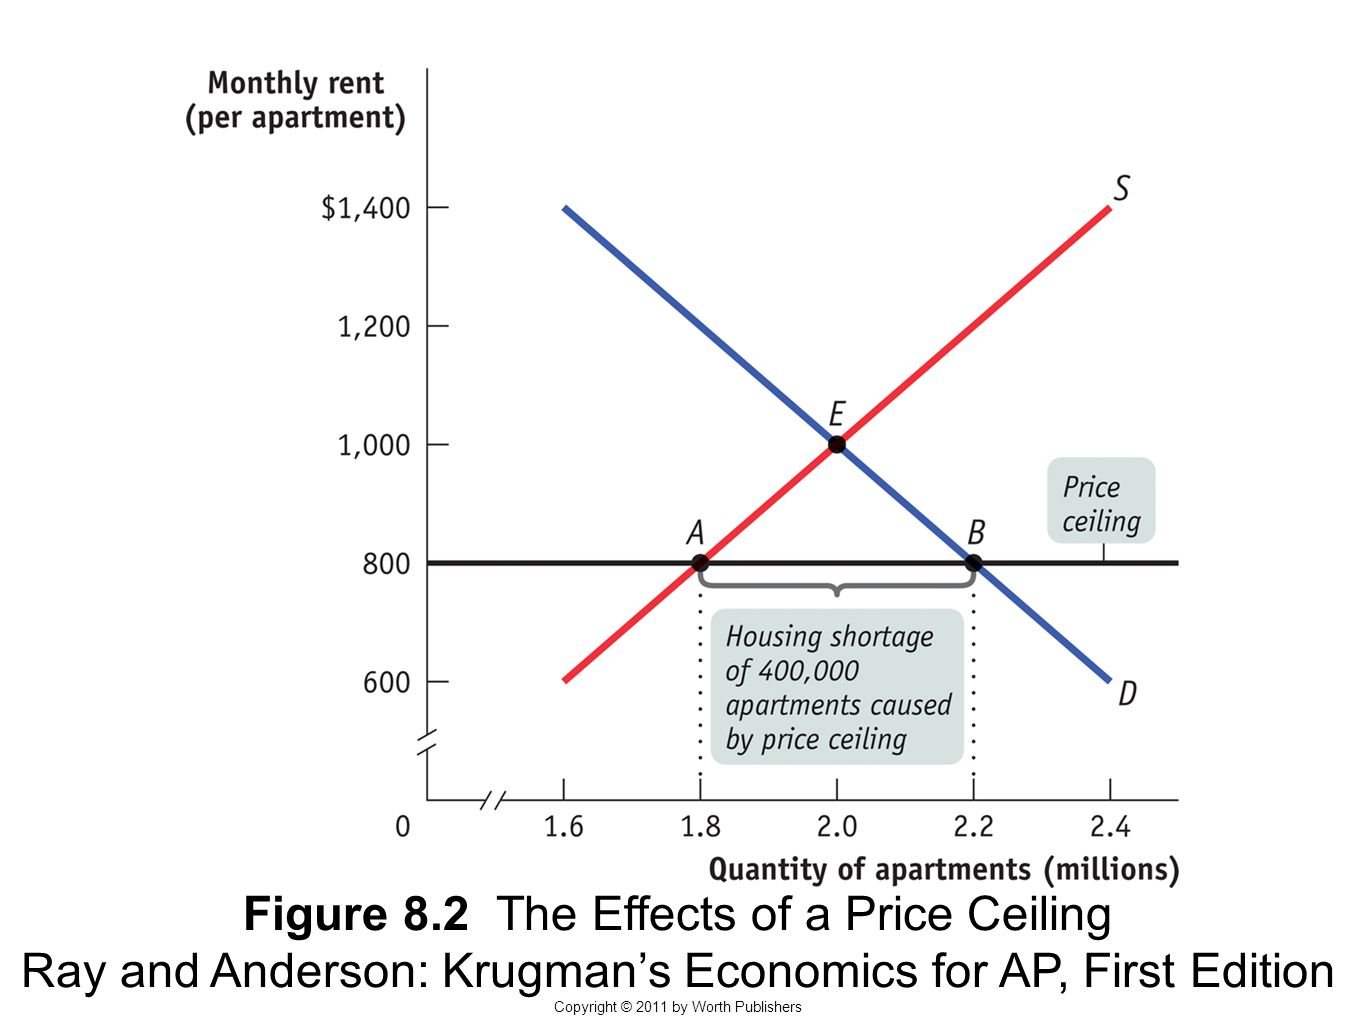 Figure 8.2 The Effects of a Price Ceiling Ray and Anderson: Krugman's Economics for AP, First Edition Copyright © 2011 by Worth Publishers